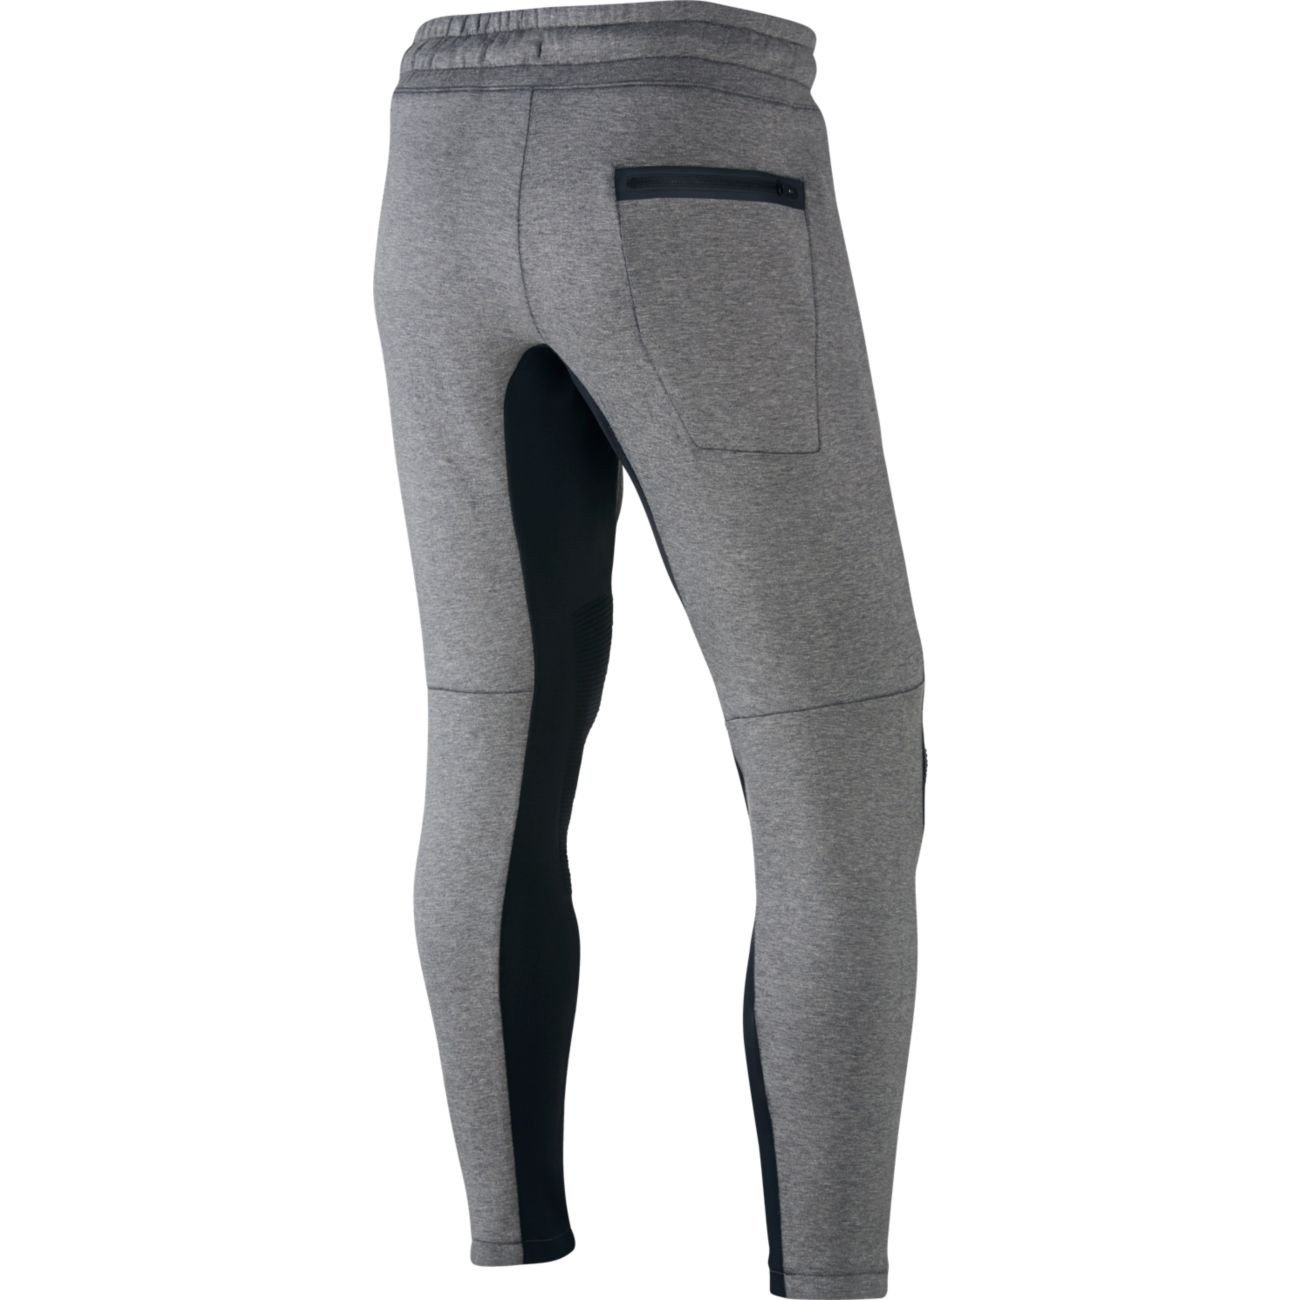 NIKE SPORTSWEAR TECH FLEECE PANT / CARBON HEATHER - 2